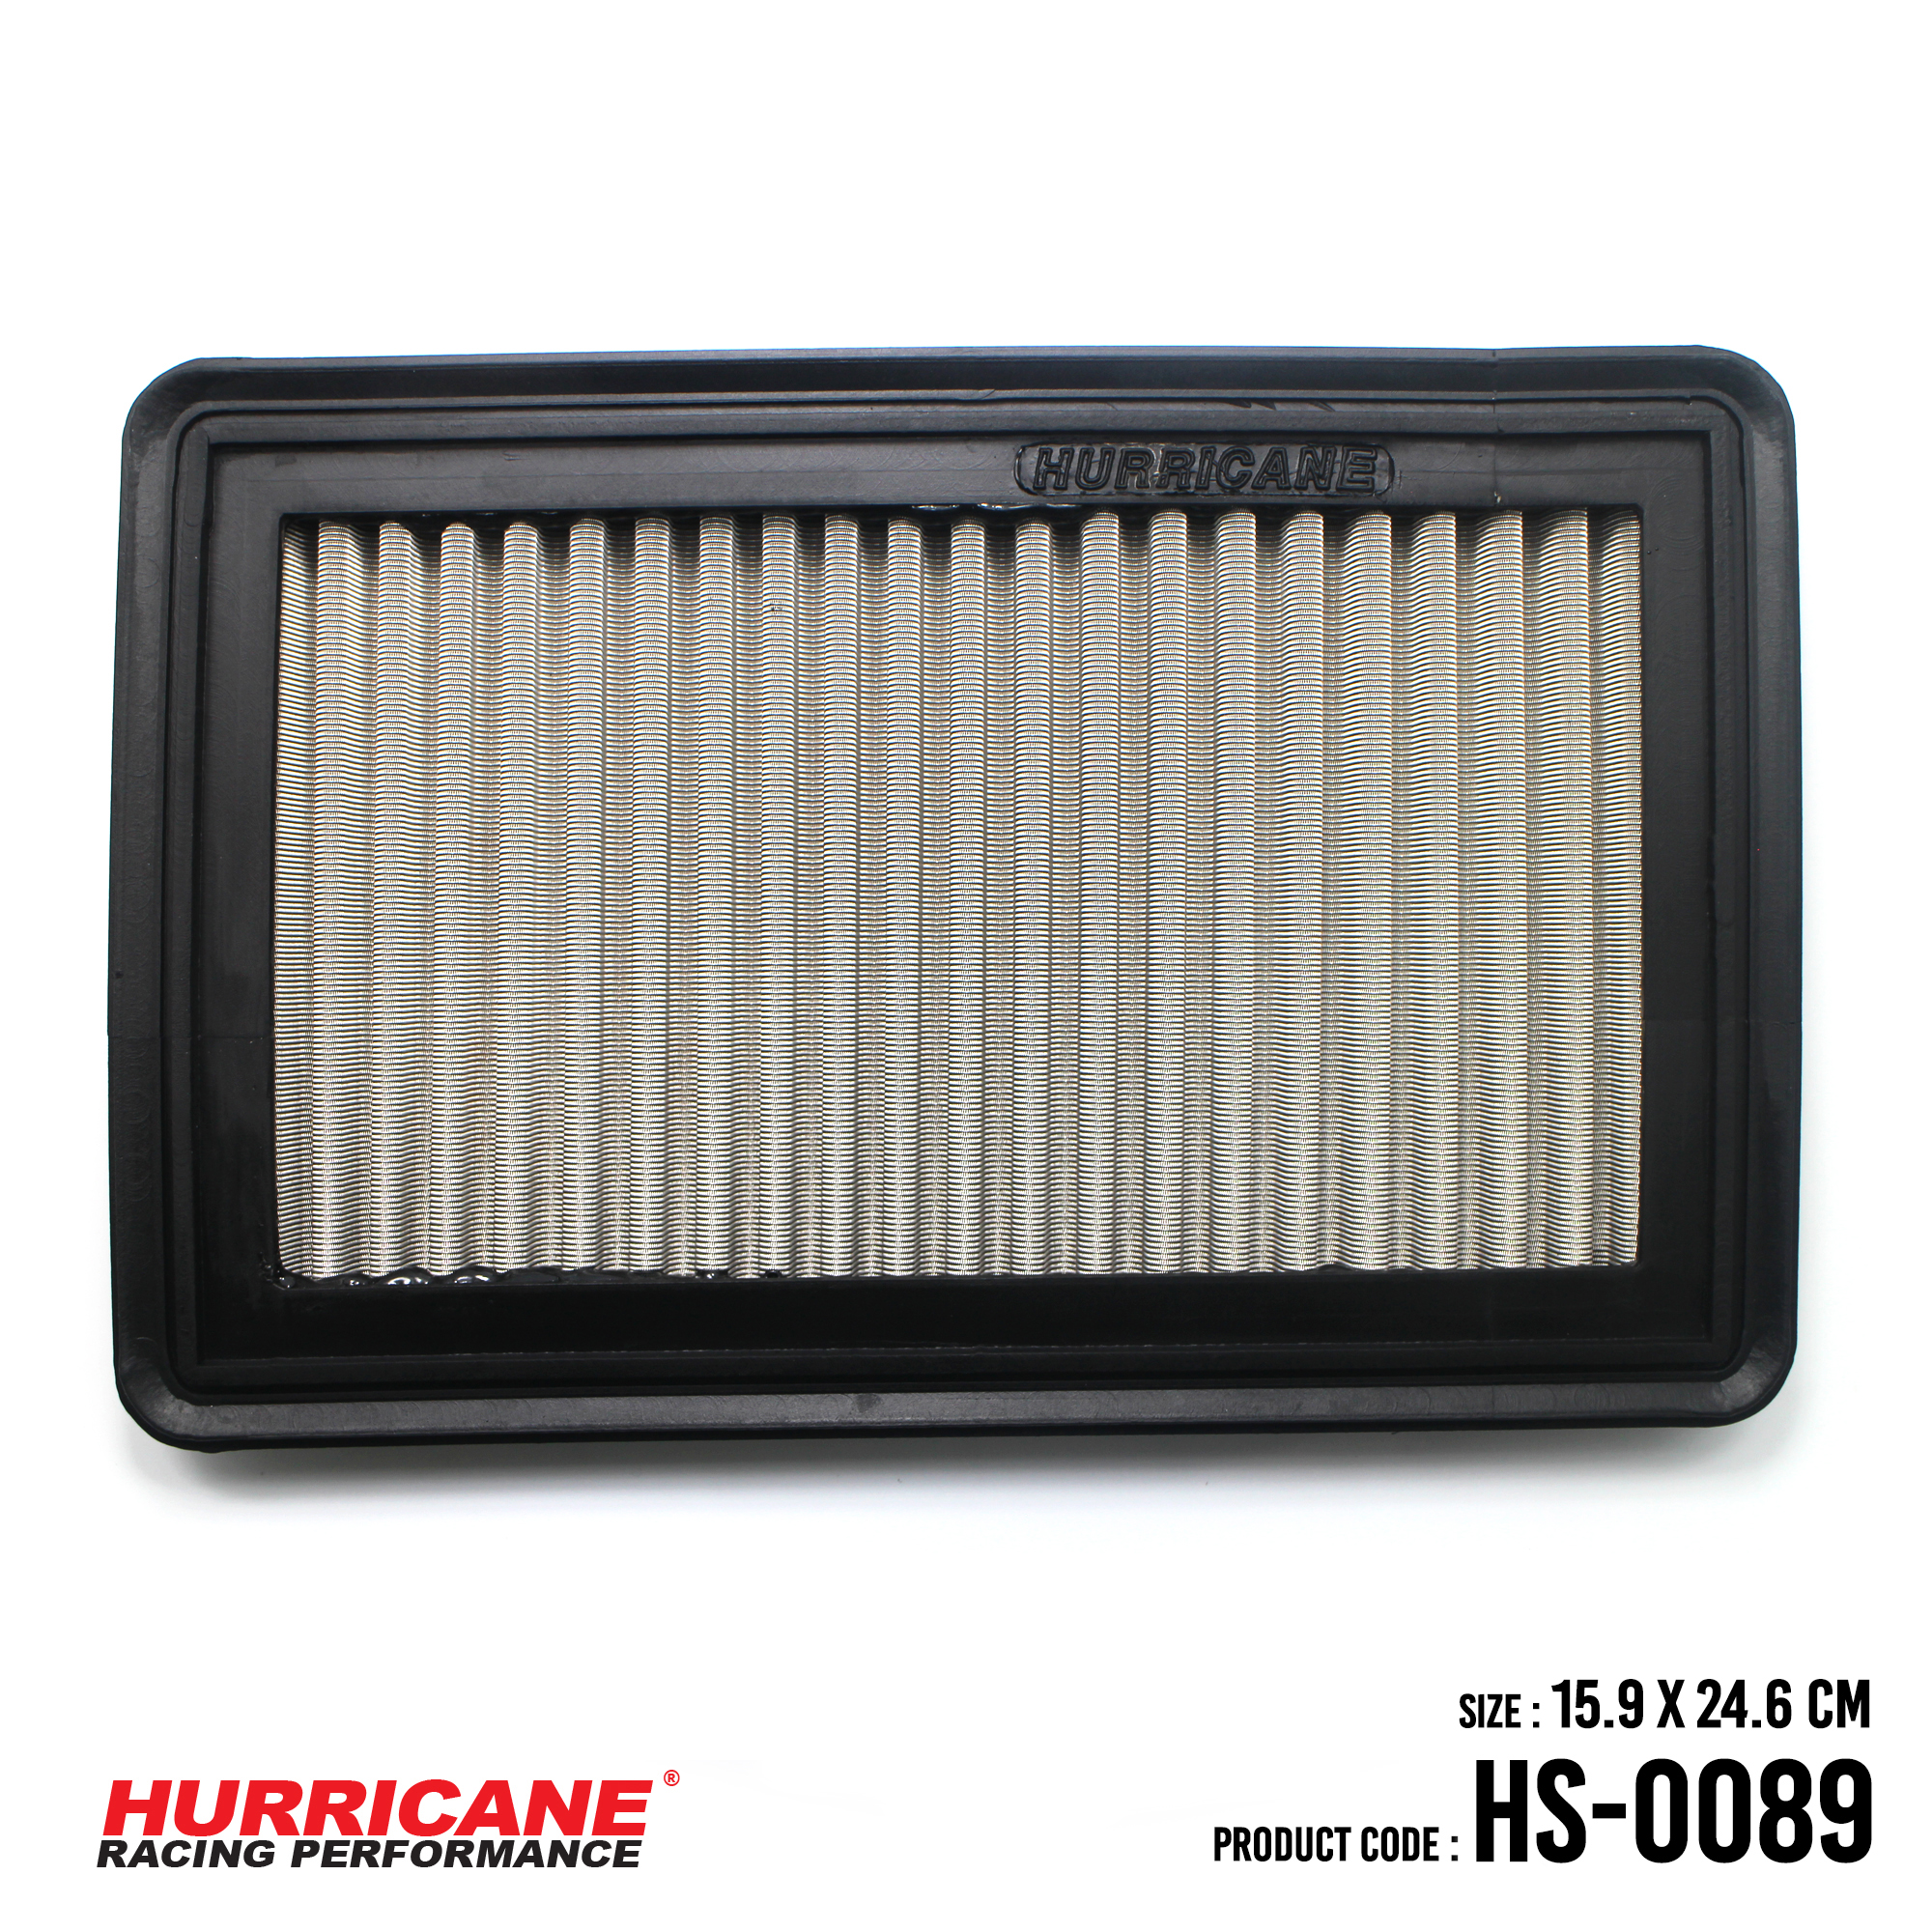 HURRICANE STAINLESS STEEL AIR FILTER FOR HS-0089 Mazda